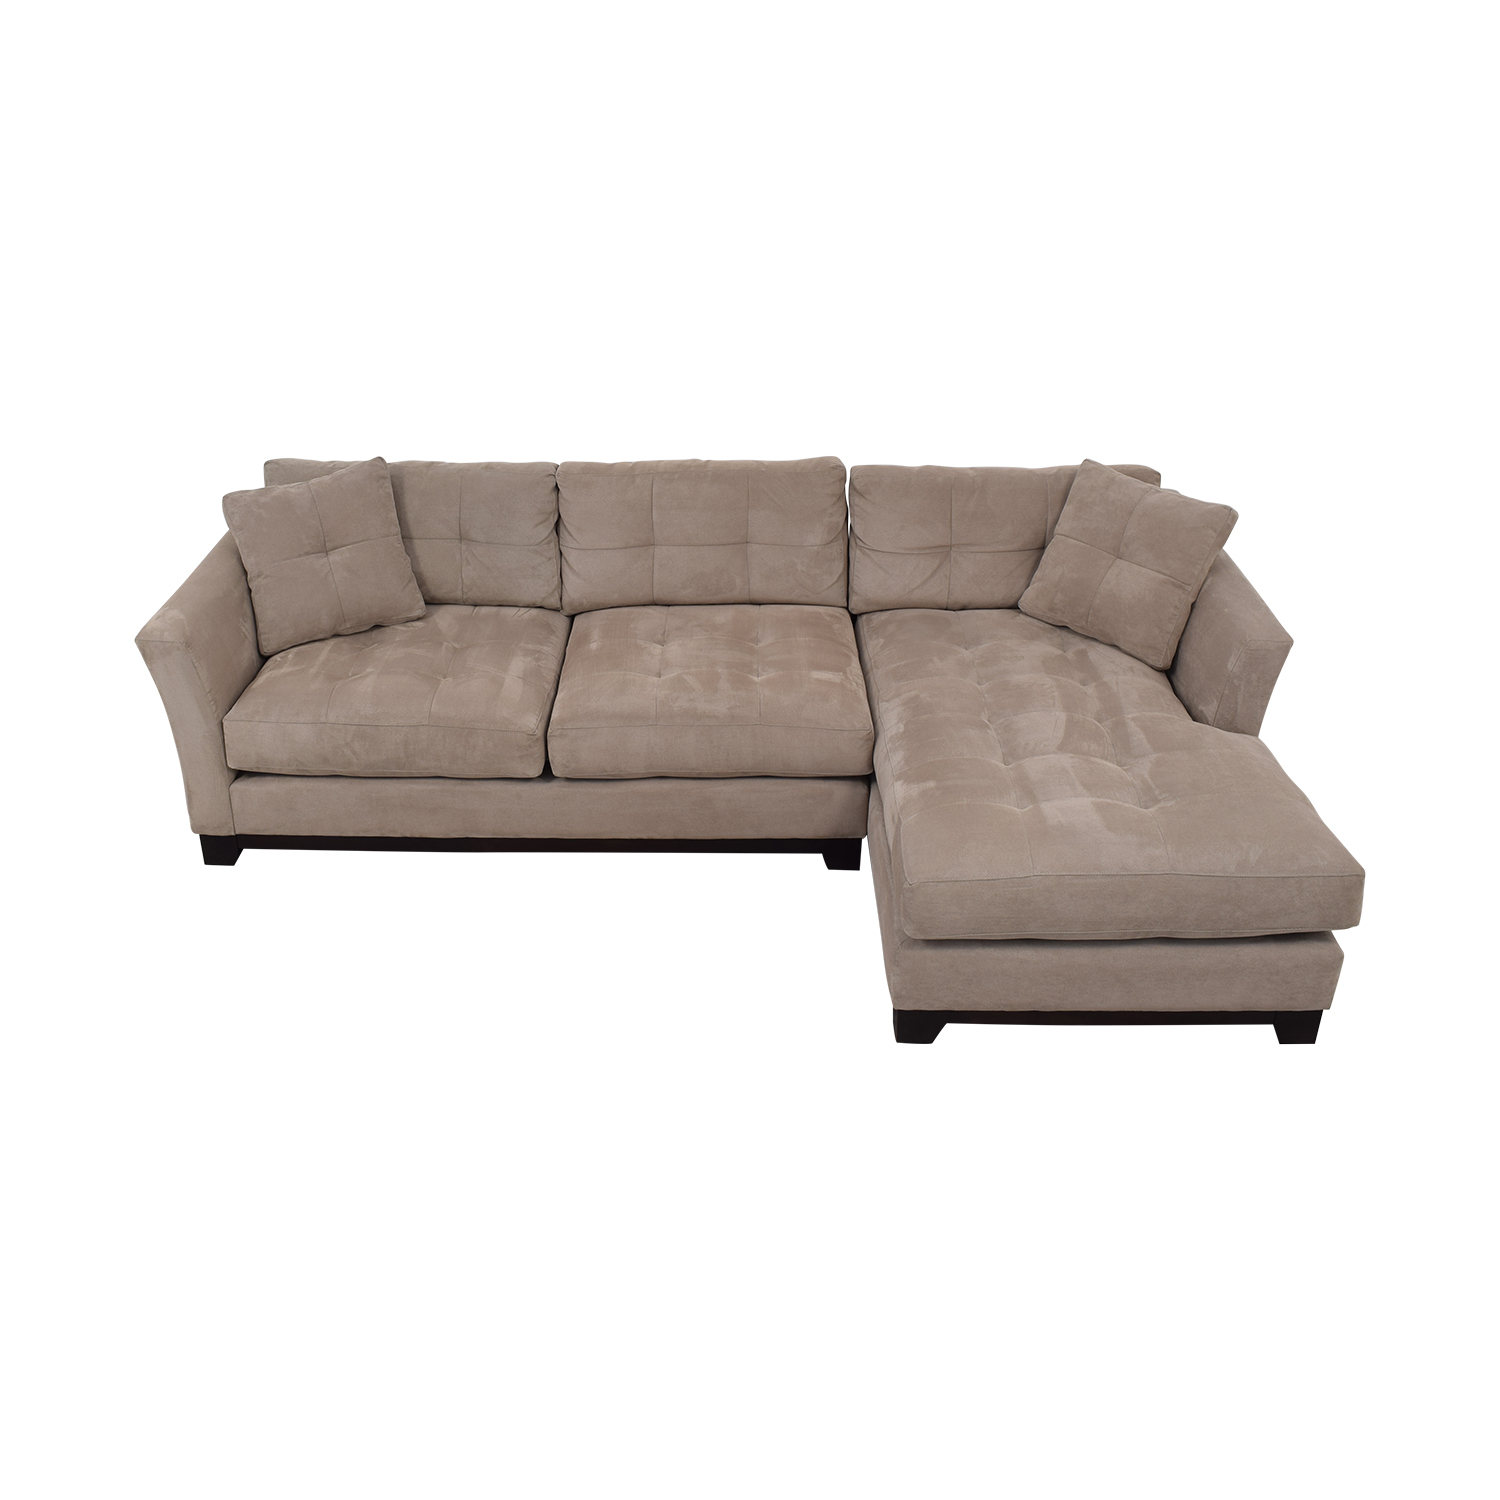 Macy's Elliot Cindy Crawford Grey Tufted Chaise Sectional / Sofas